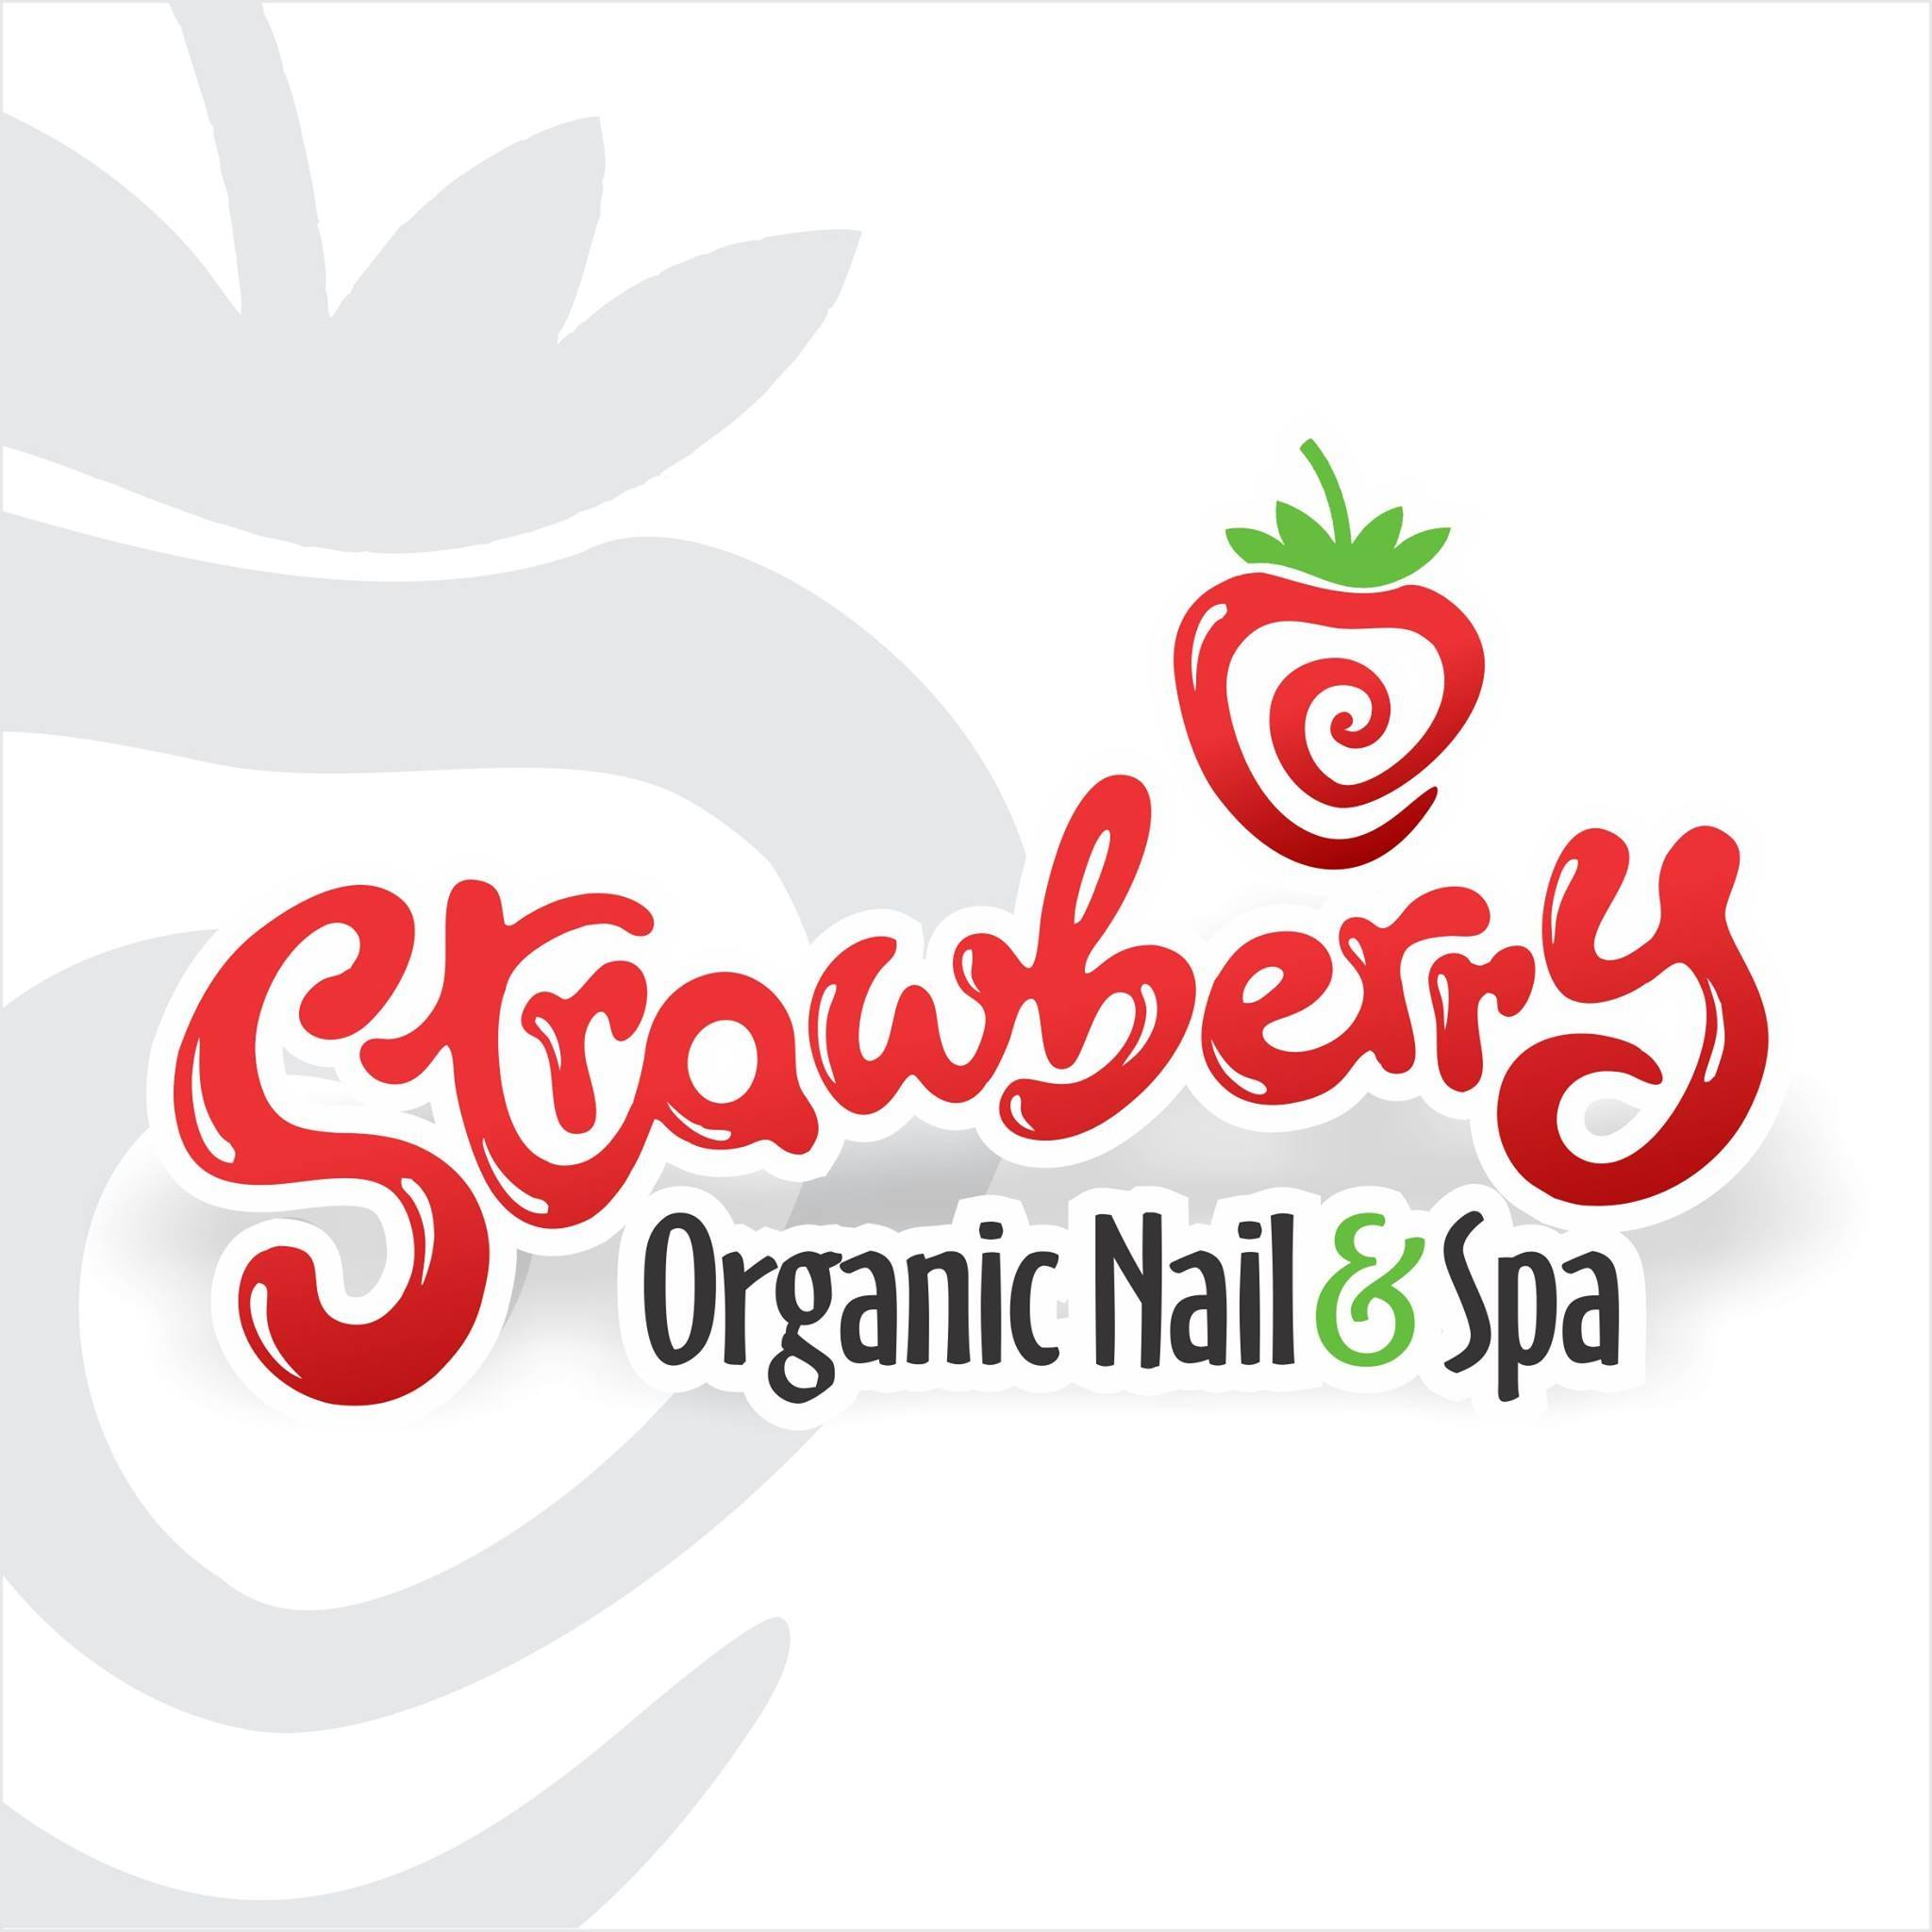 Strawberry Organic Nail & Spa